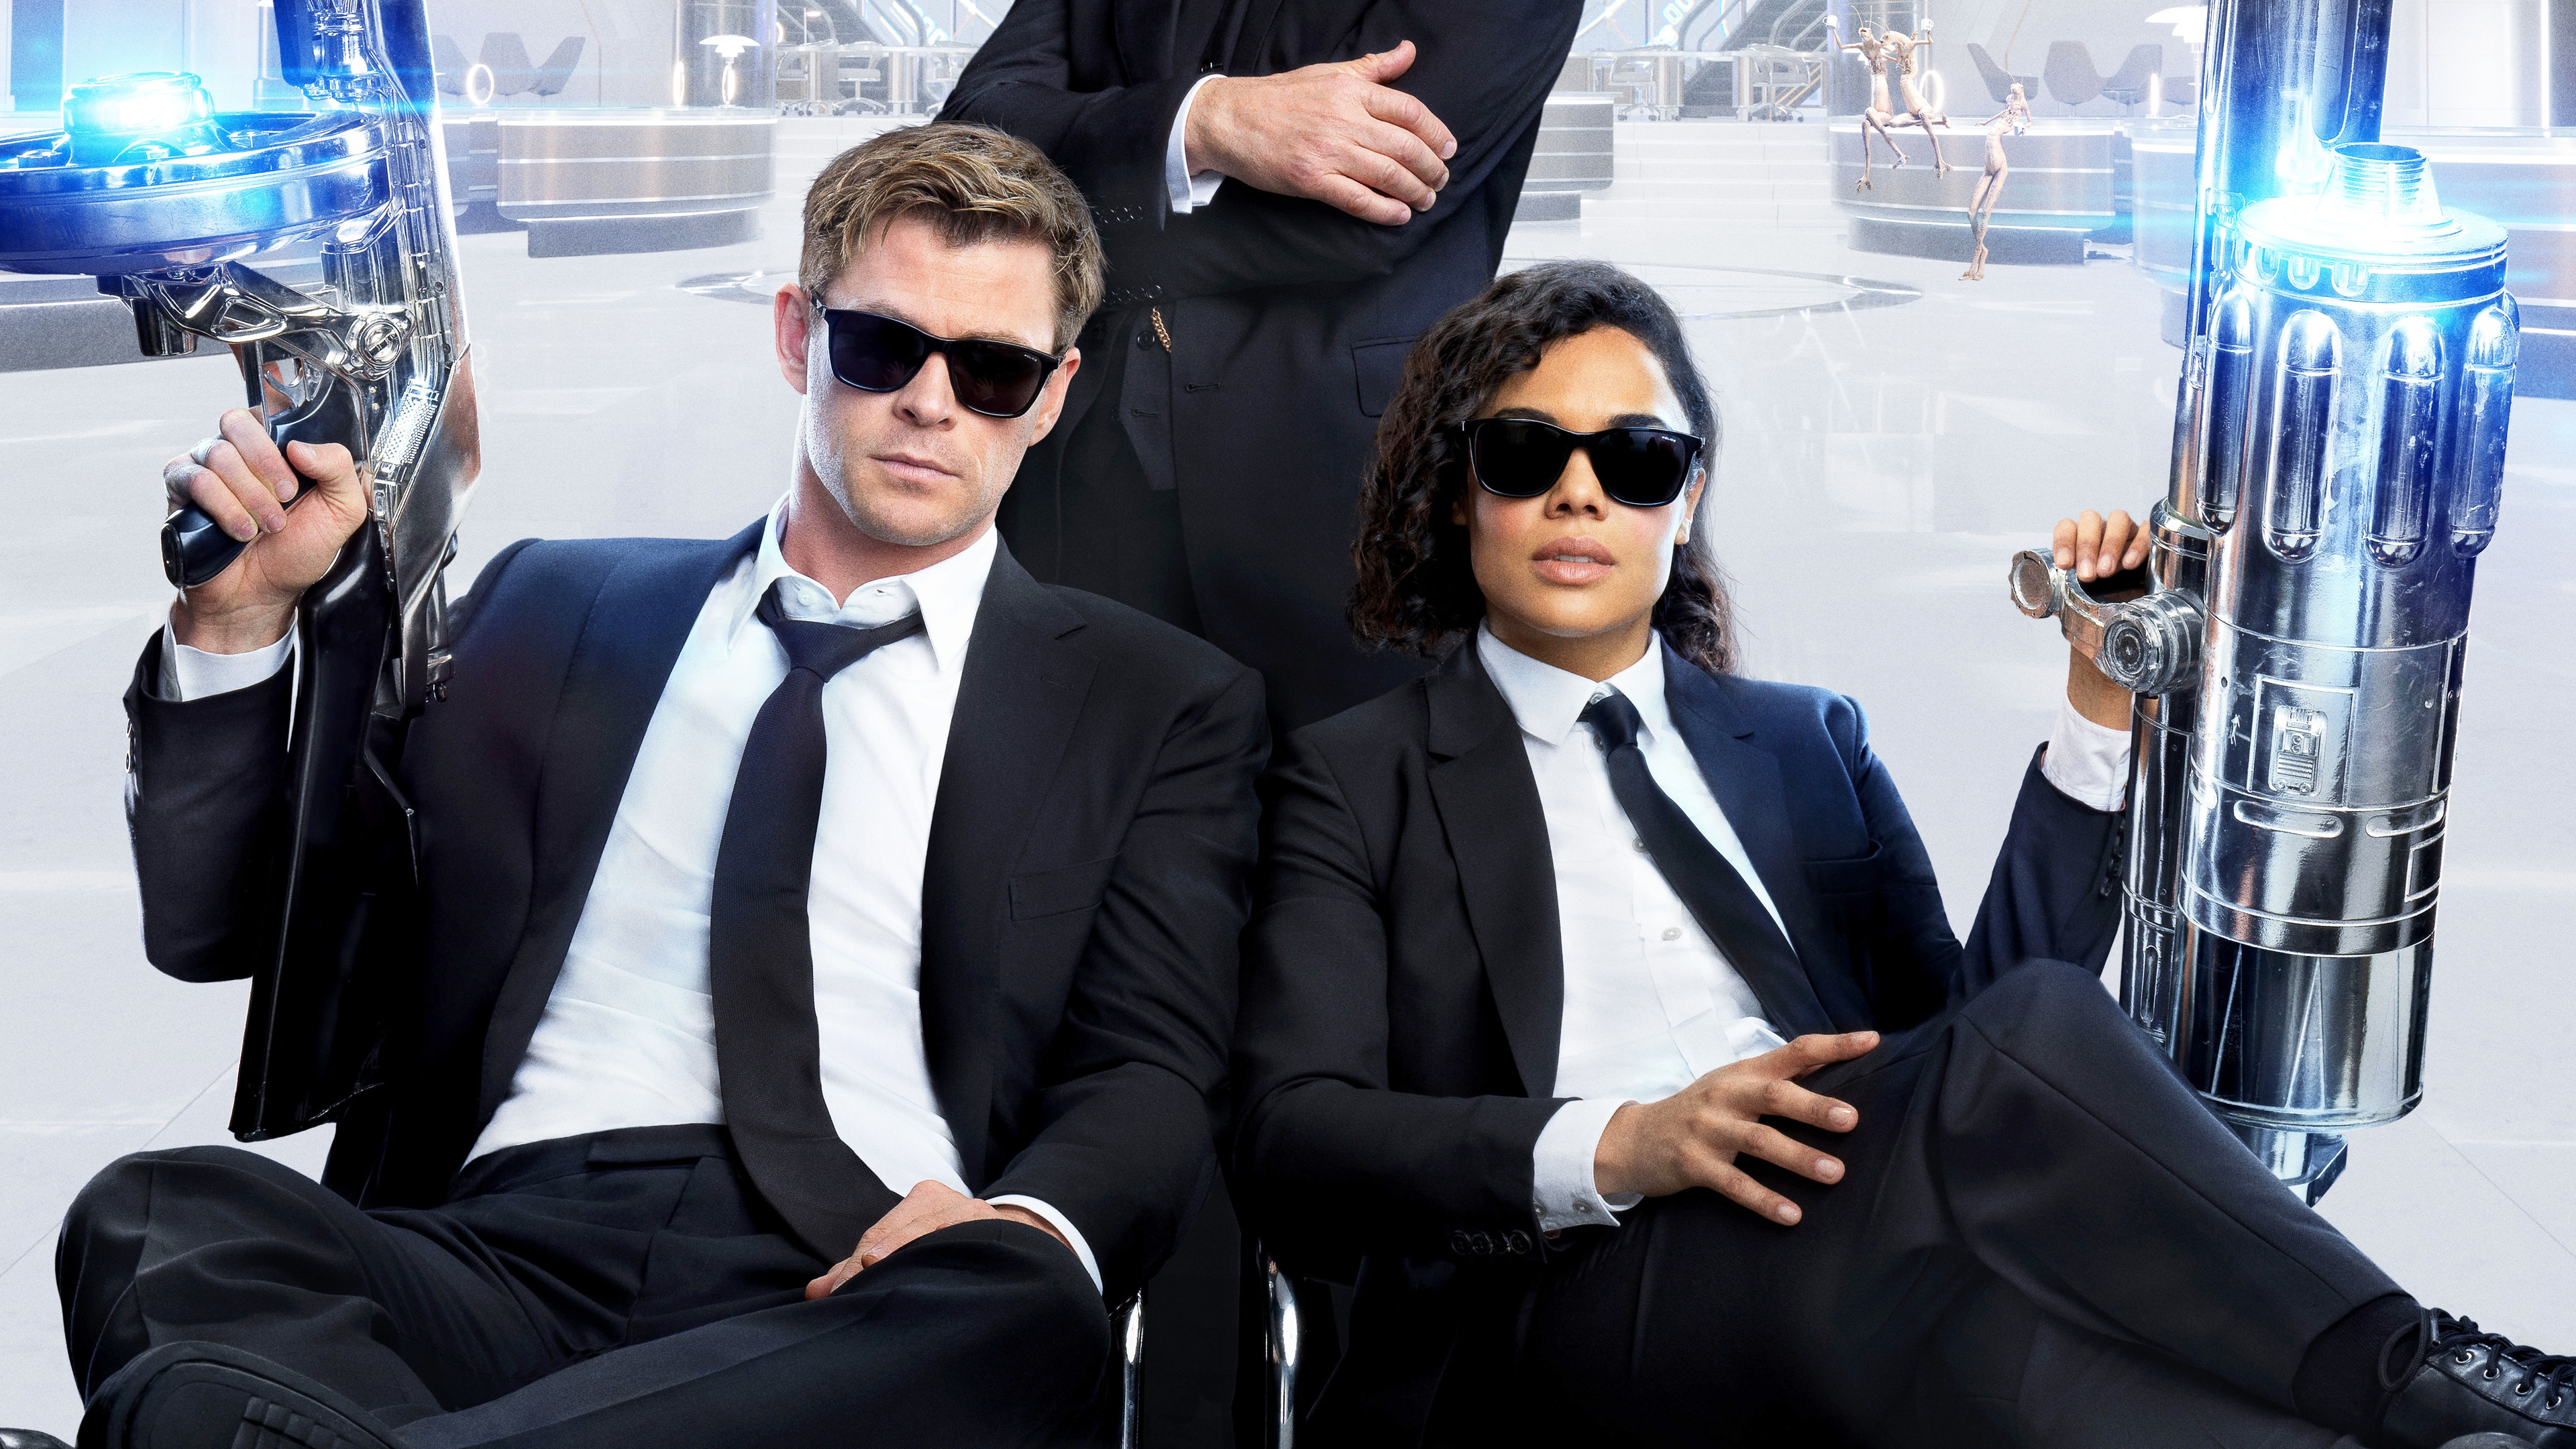 men in black international movie 4k 1546275140 - Men In Black International Movie 4k - movies wallpapers, mib international wallpapers, men in black wallpapers, men in black international wallpapers, hd-wallpapers, chris hemsworth wallpapers, 4k-wallpapers, 2019 movies wallpapers